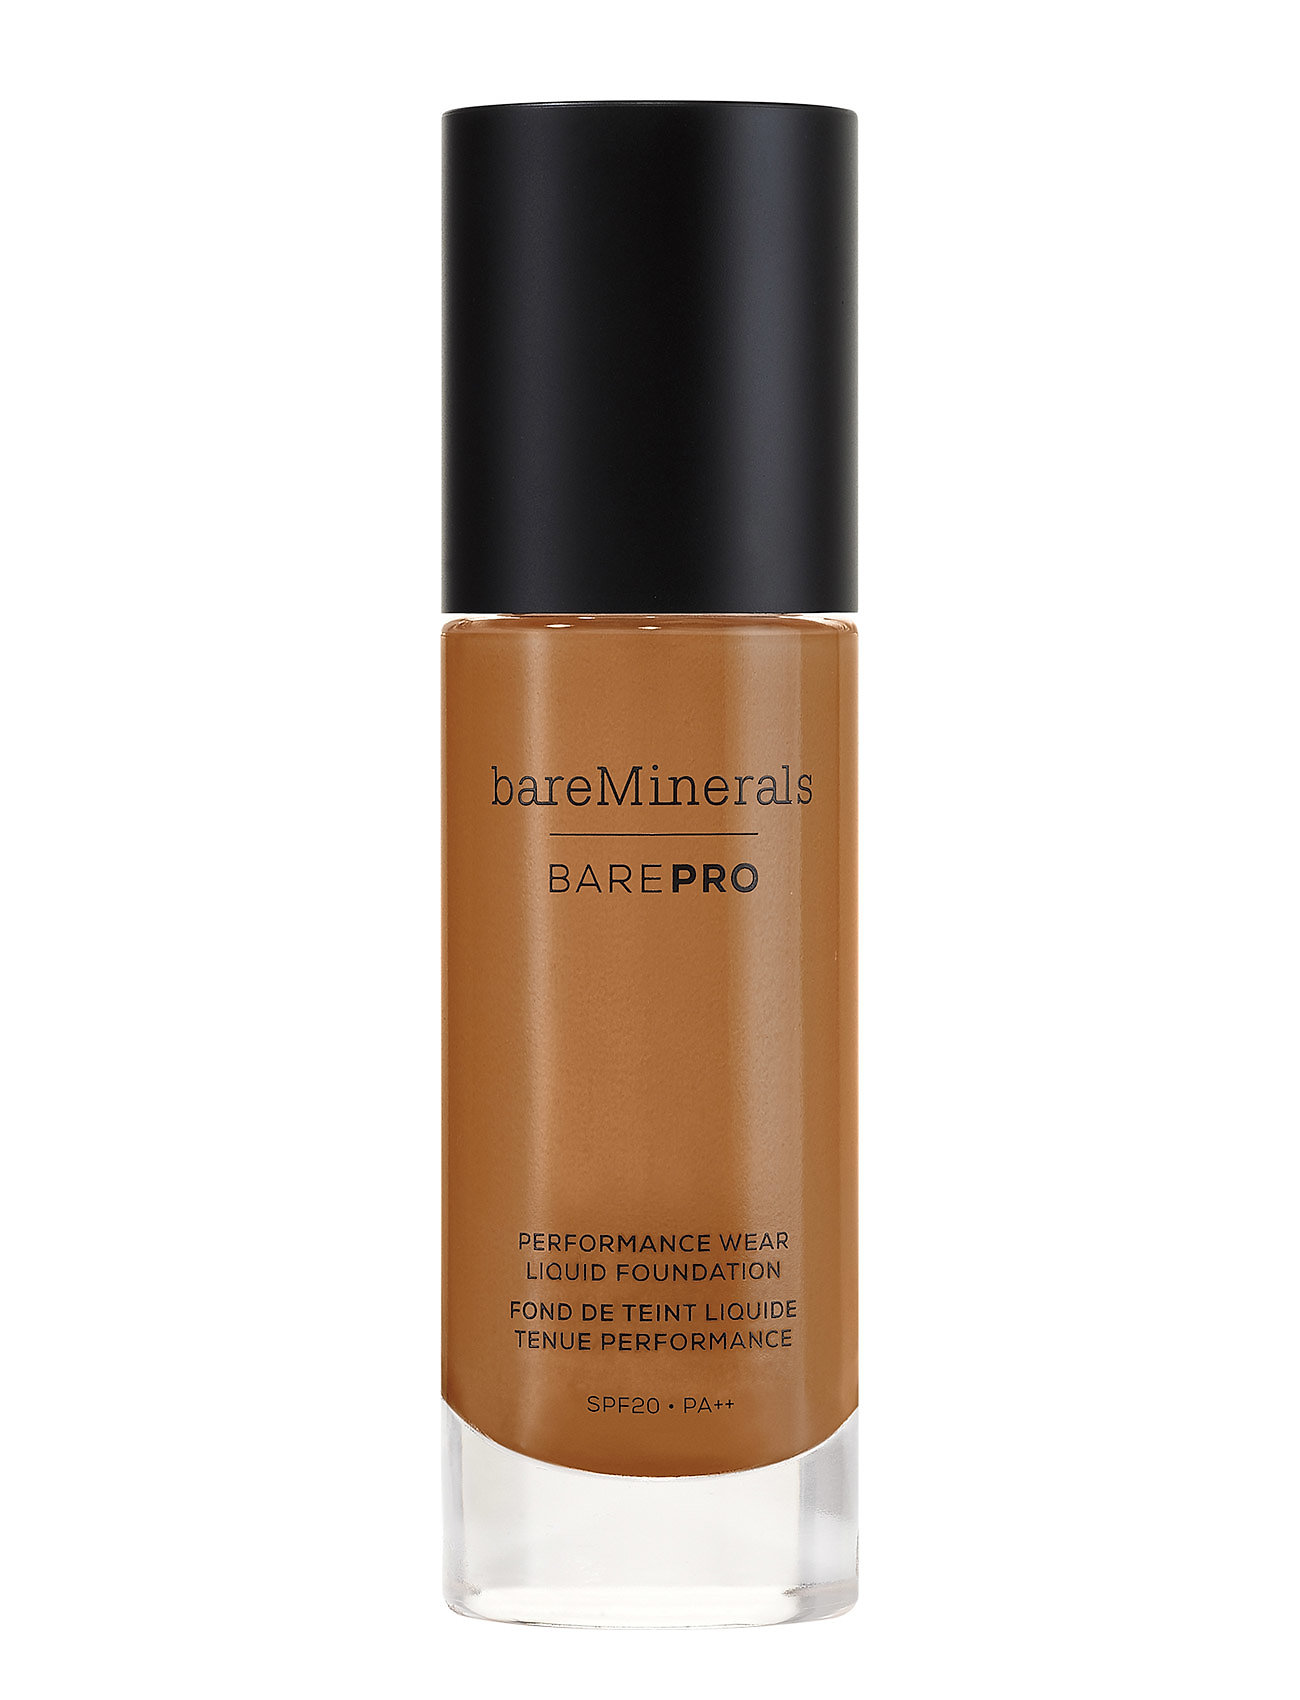 Image of Barepro Performance Wear Liquid Foundation Spf 20 Foundation Makeup BareMinerals (3067521511)